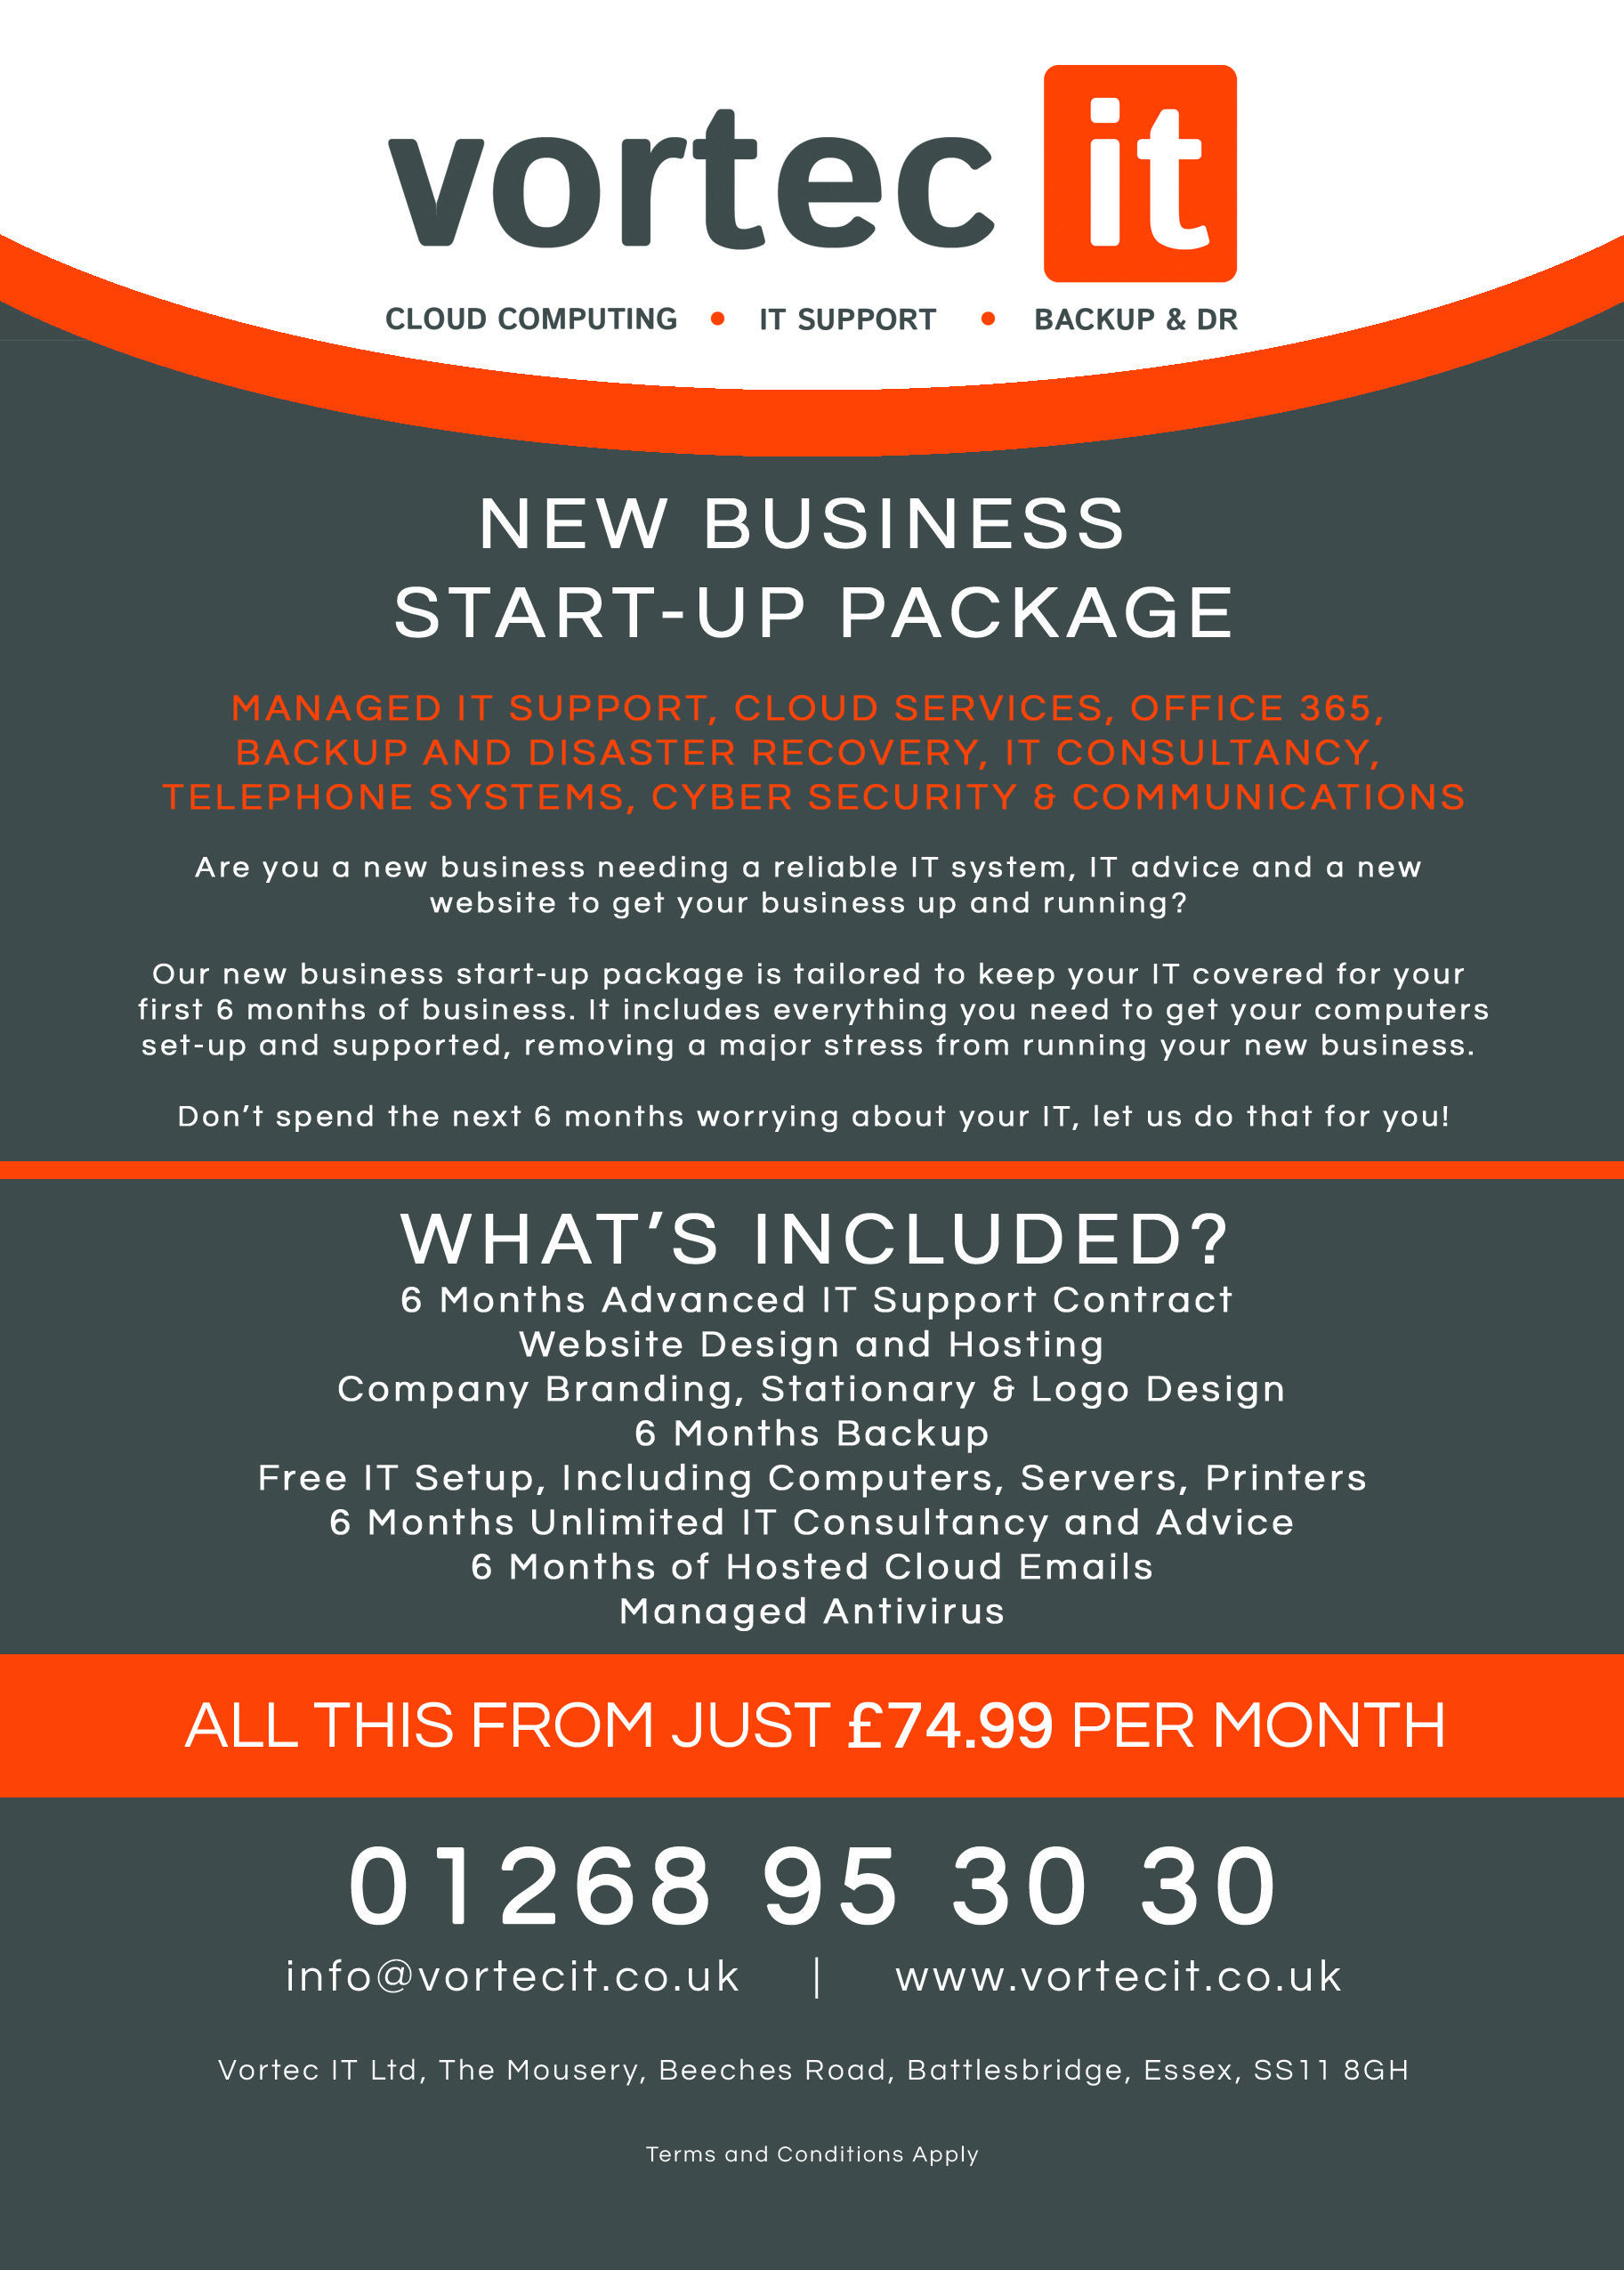 new business start up package vortec it